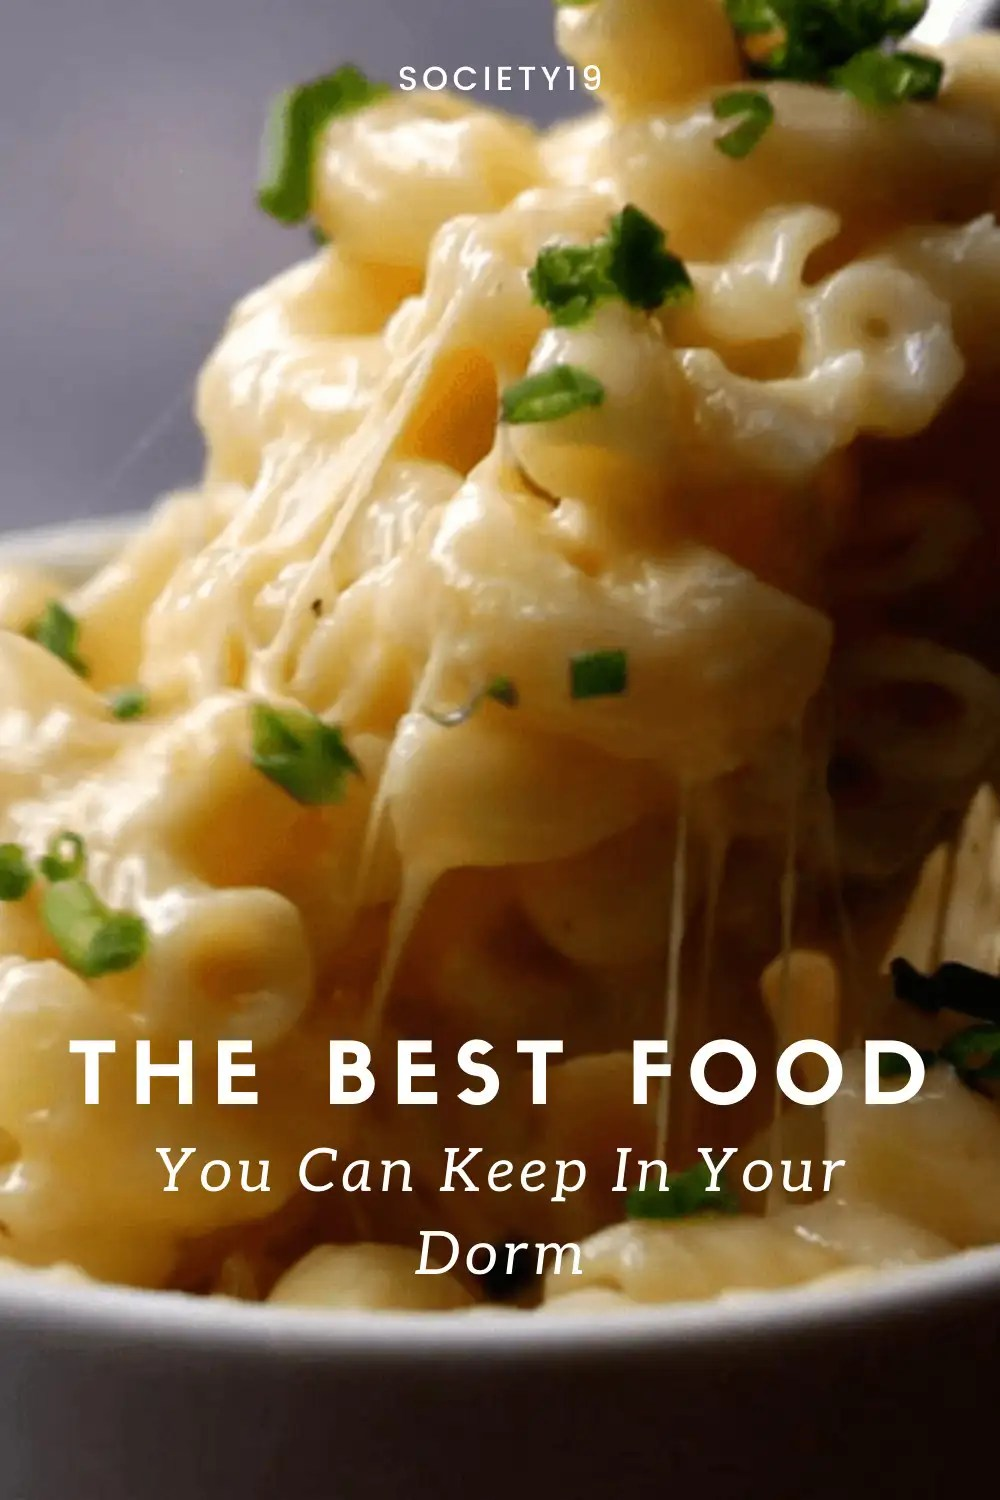 The Best Food You Can Keep In Your Dorm